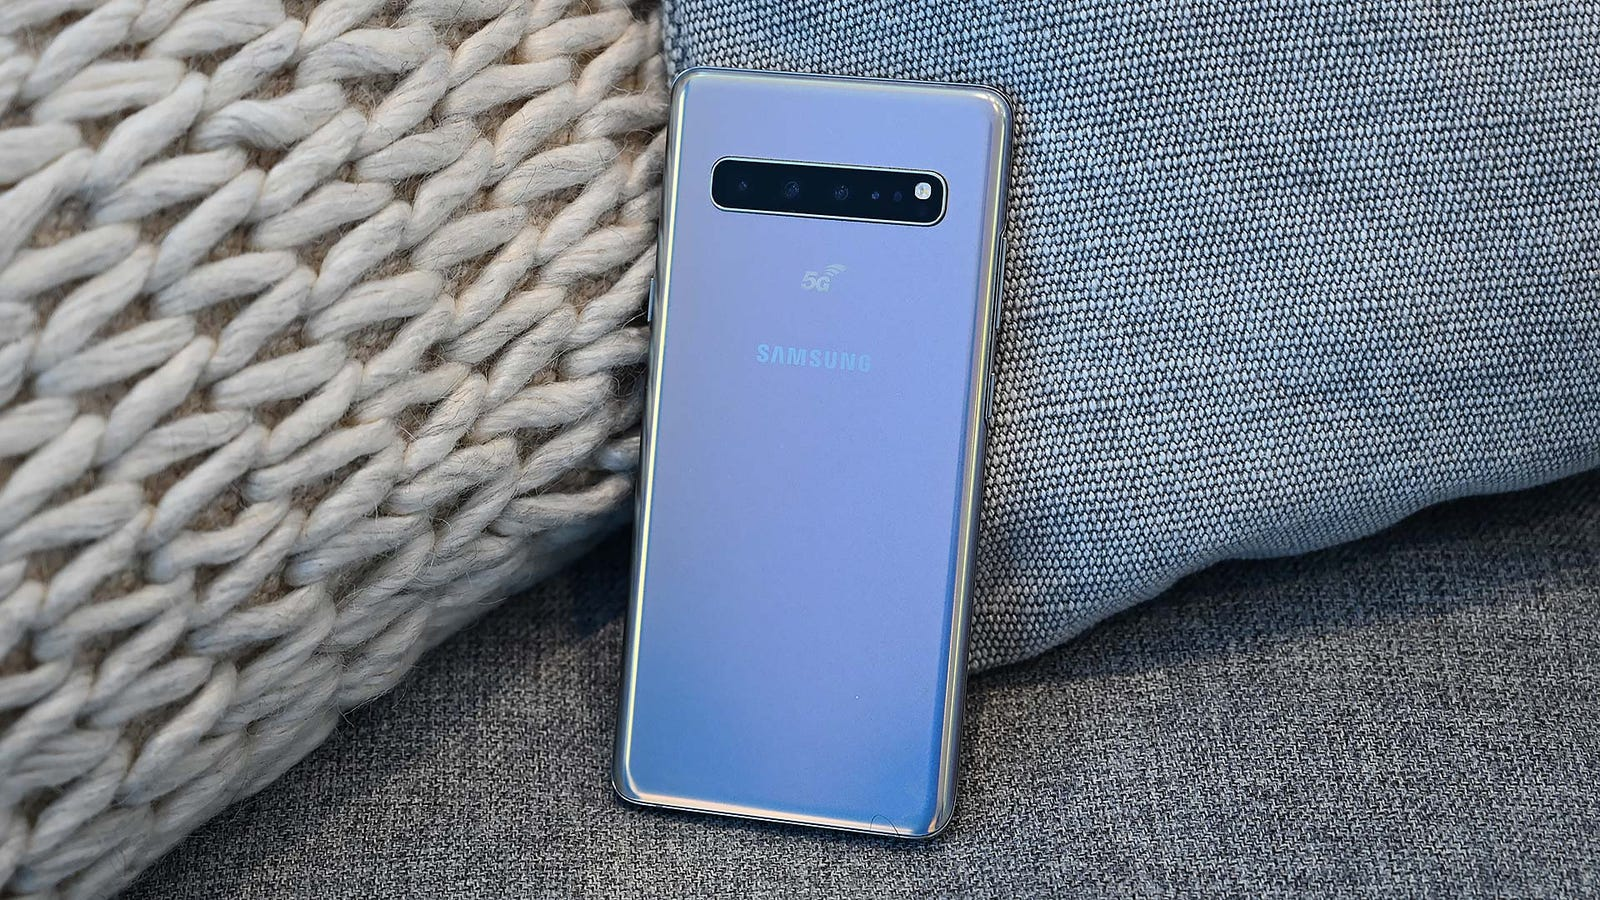 Since it wasn't quite ready to demo, the 5G S10 is little more than the very pretty brick for now.